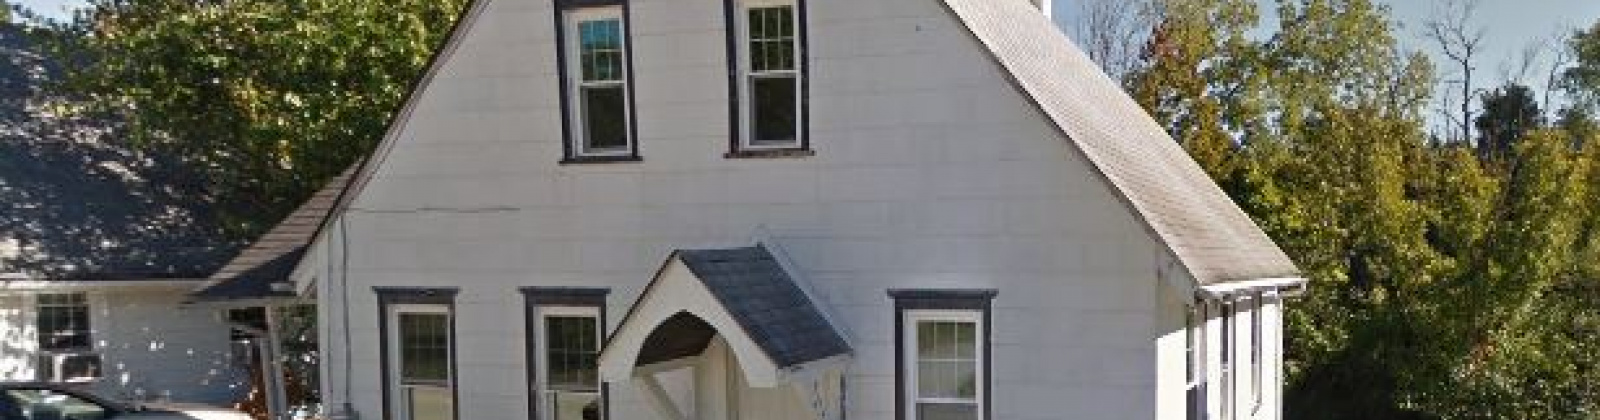 3 Bedrooms Bedrooms, ,1 BathroomBathrooms,Single Family Home,For Sale,1138